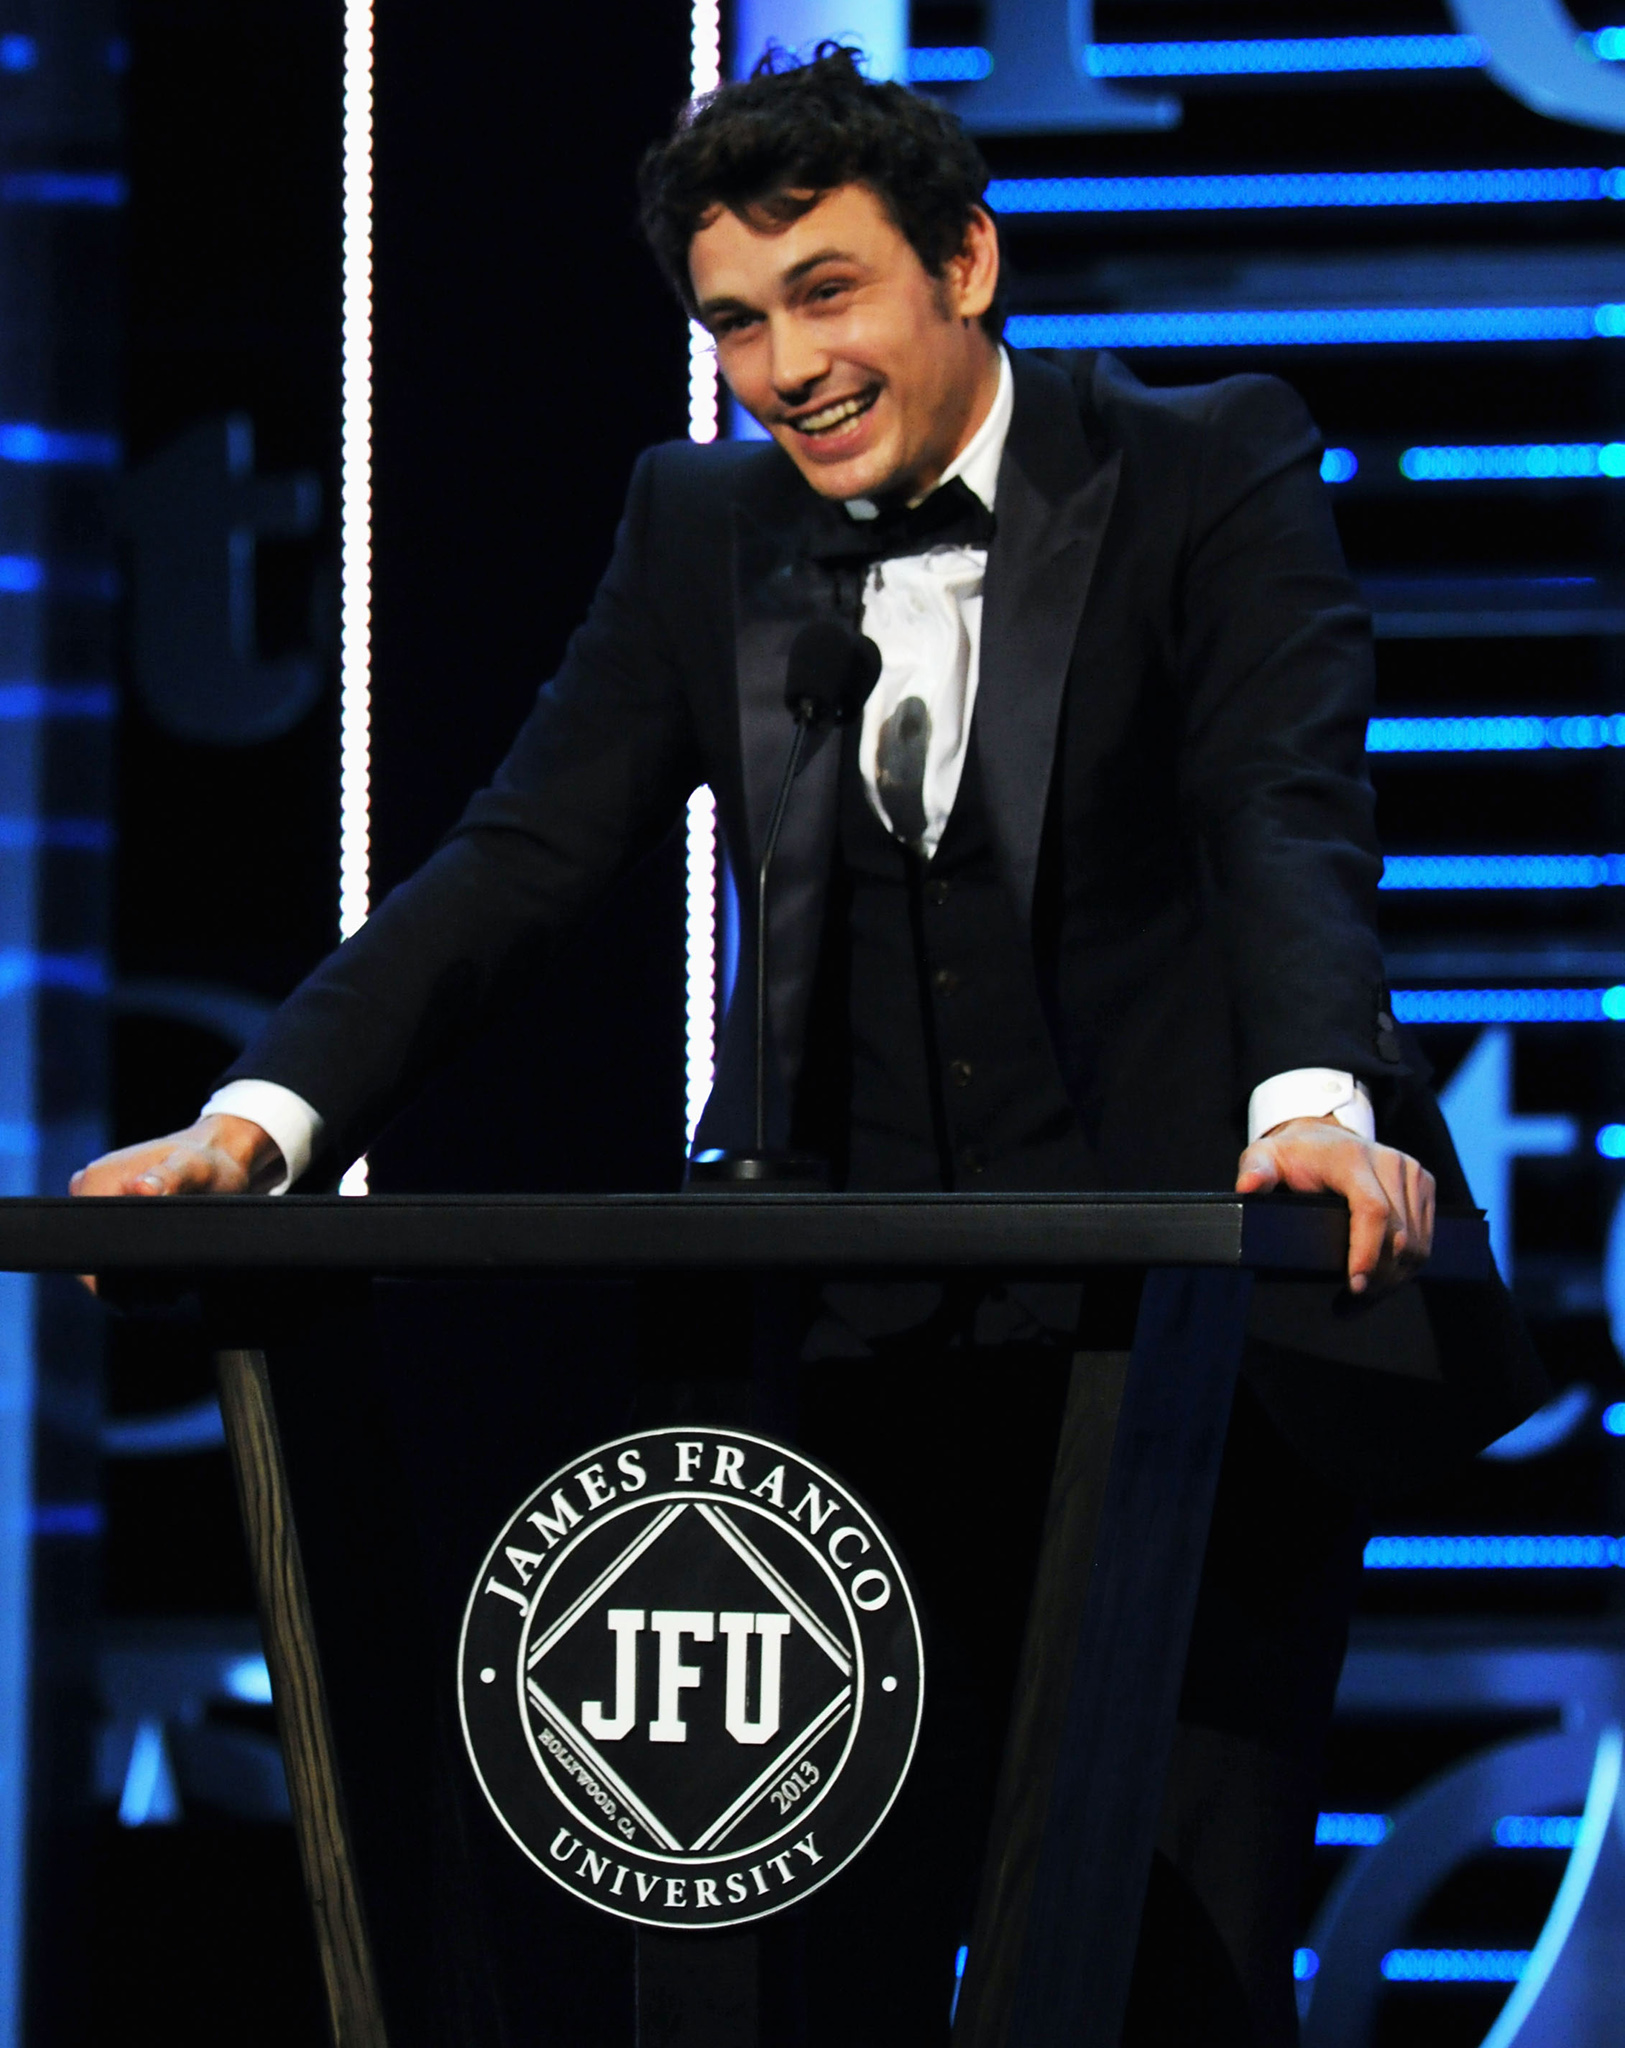 James Franco (Getty Images)